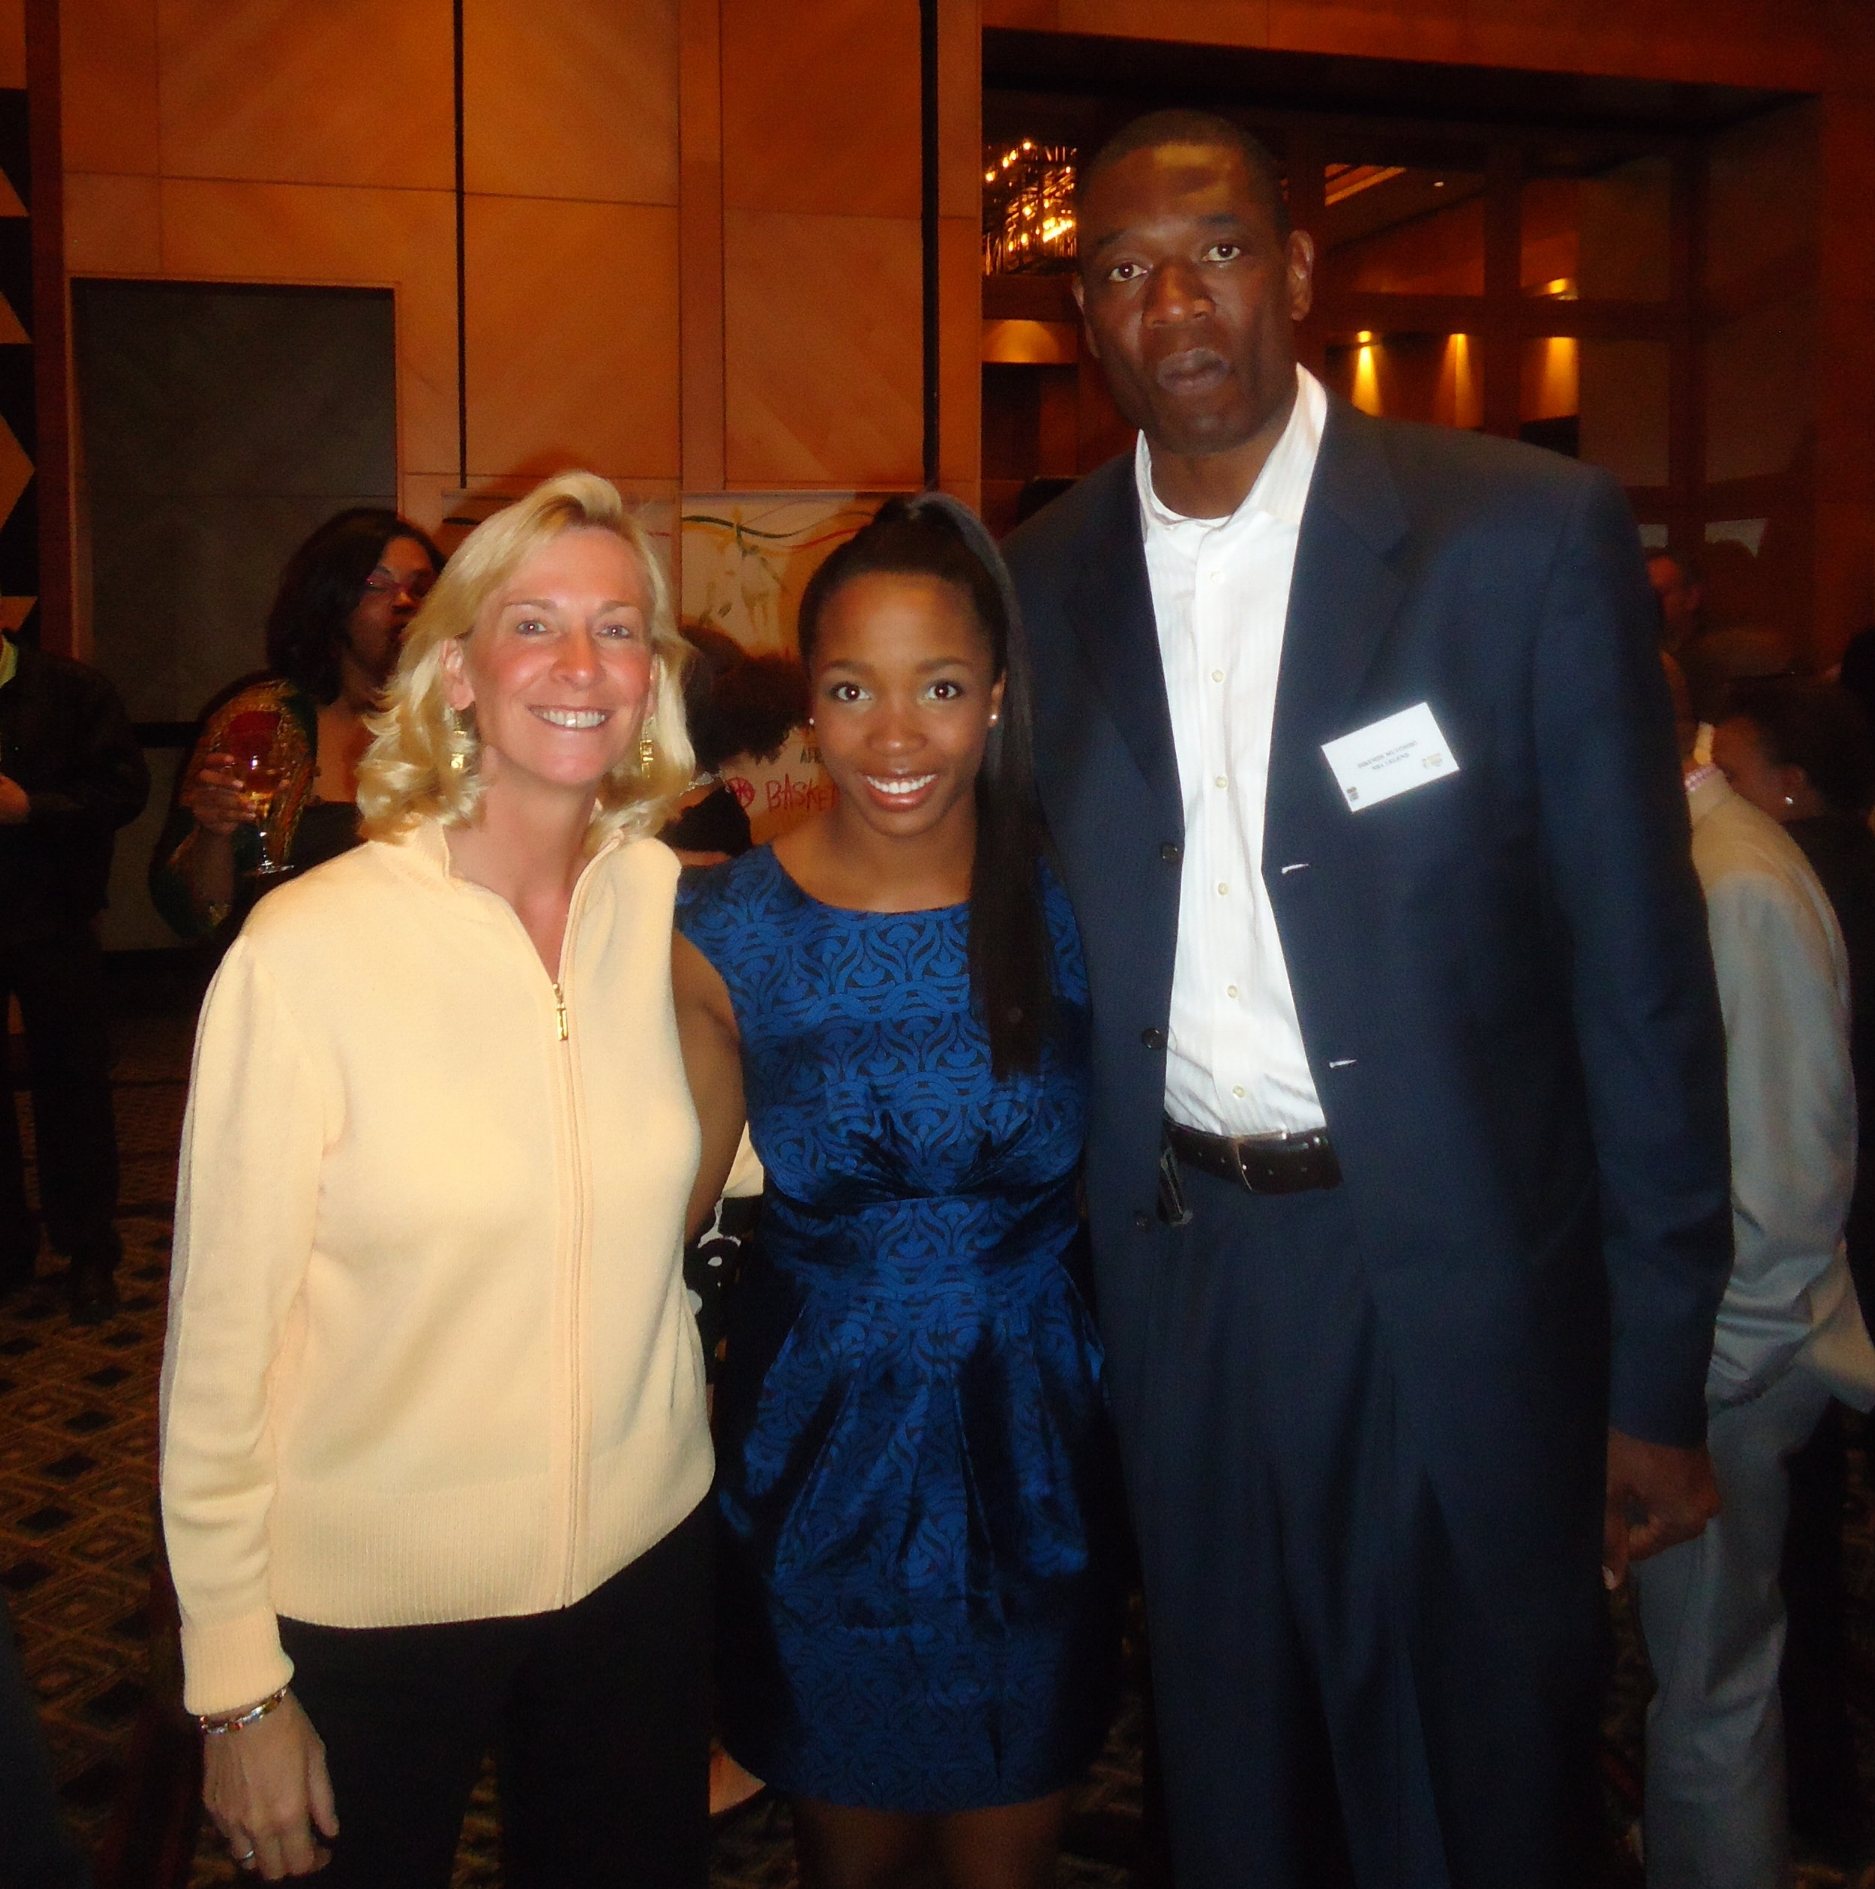 NBA LEGEND DIKEMBE MUTOMBO, GREEN, SENIOR VP NBA INTERNATIONAL, BOHUNY at basketball without borders reception in johannesburg, south africa.